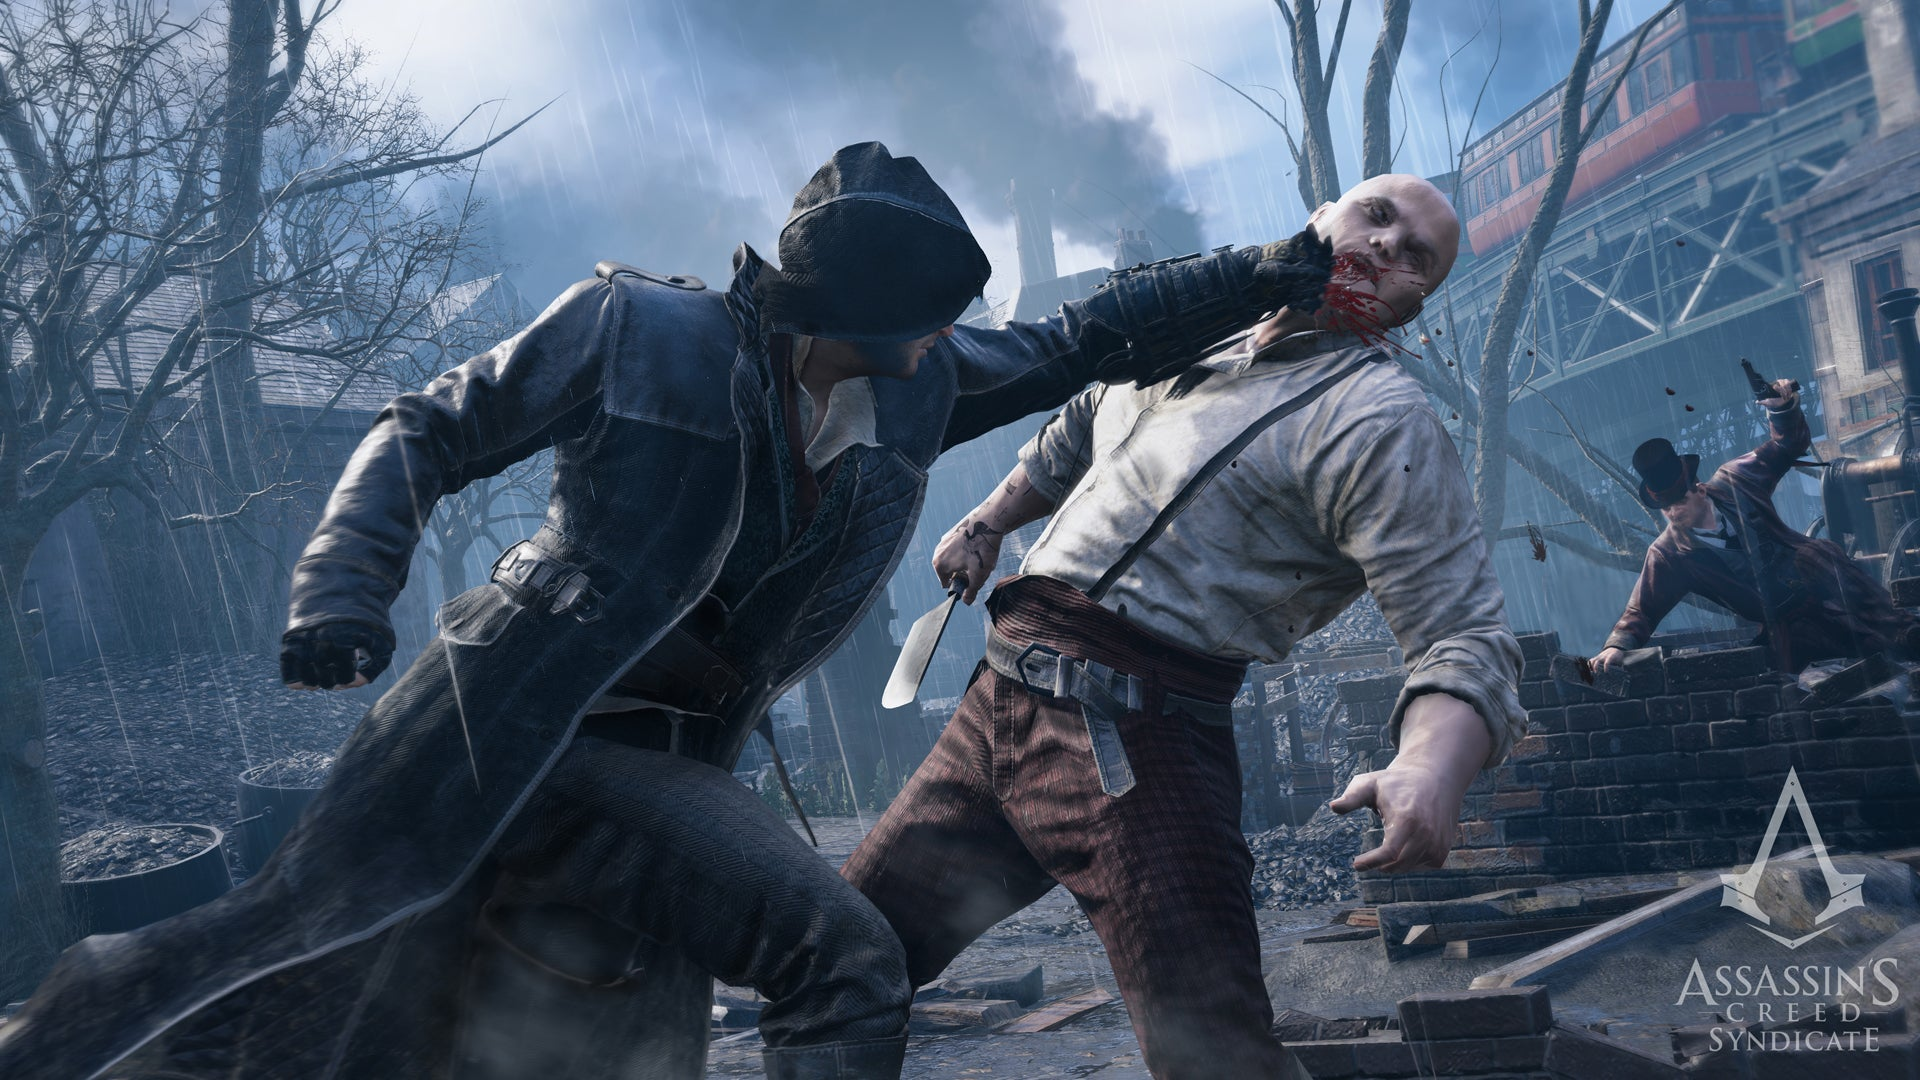 Tell Ubisoft What You Really Think About Assassin's Creed